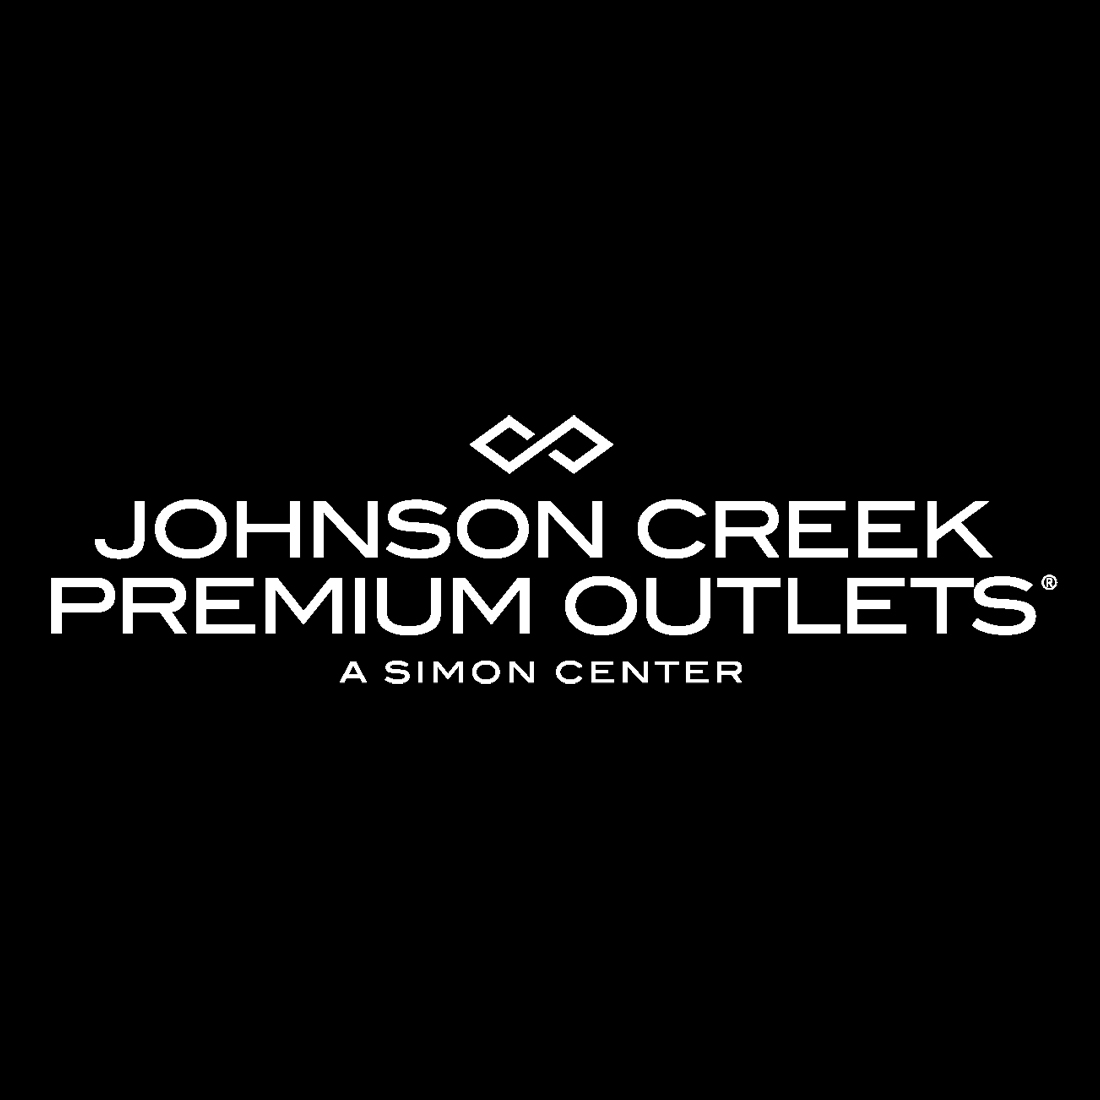 single men in johnson creek Find all of the stores, dining and entertainment options located at johnson creek premium outlets.